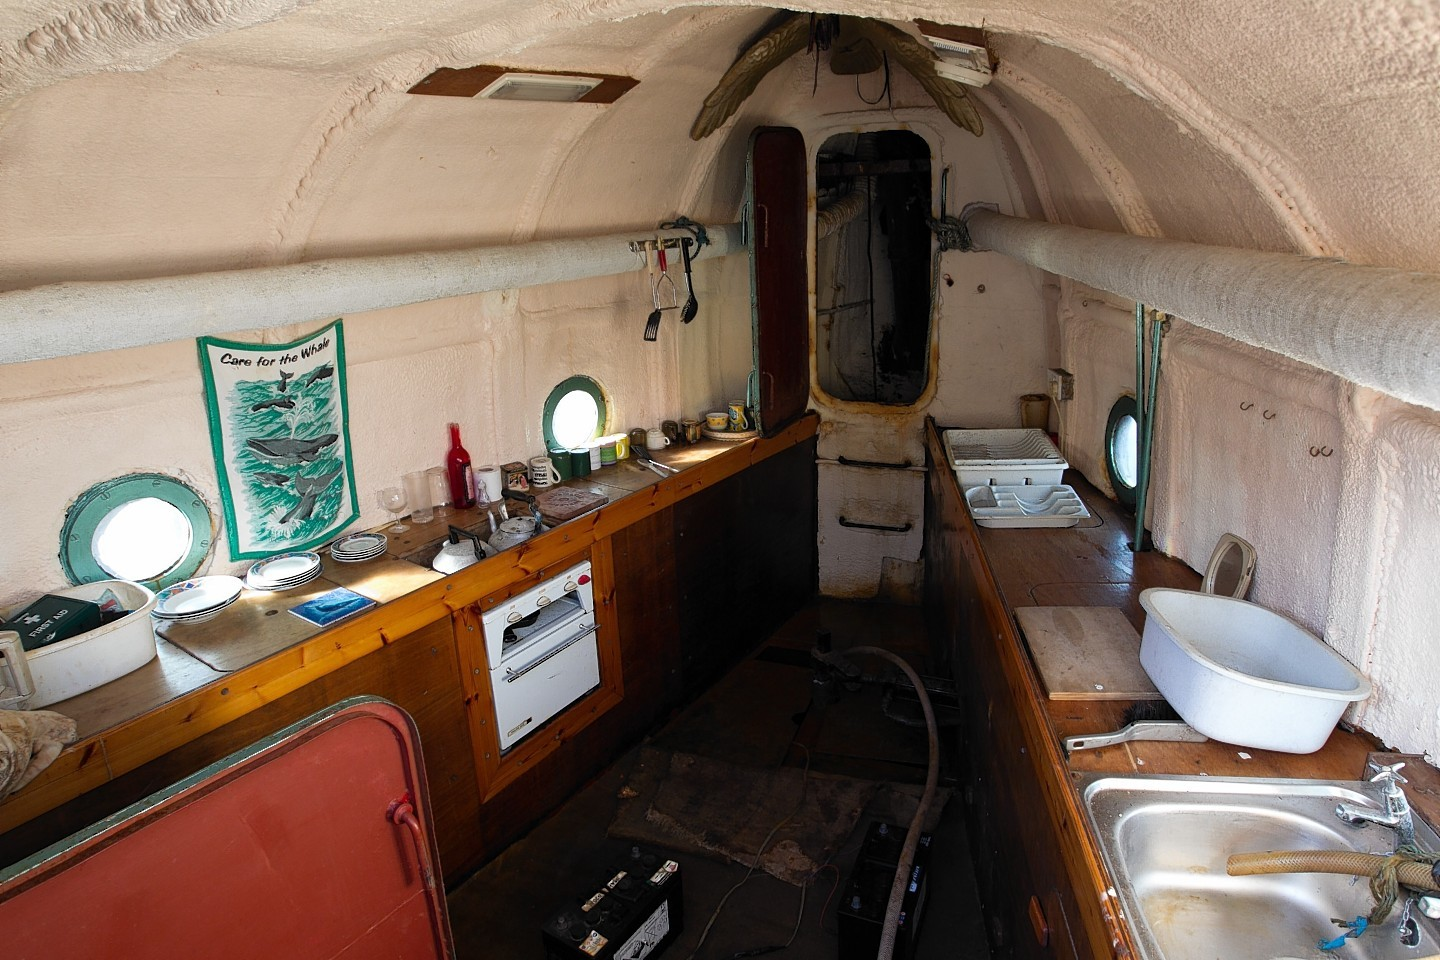 Inside the whale boat